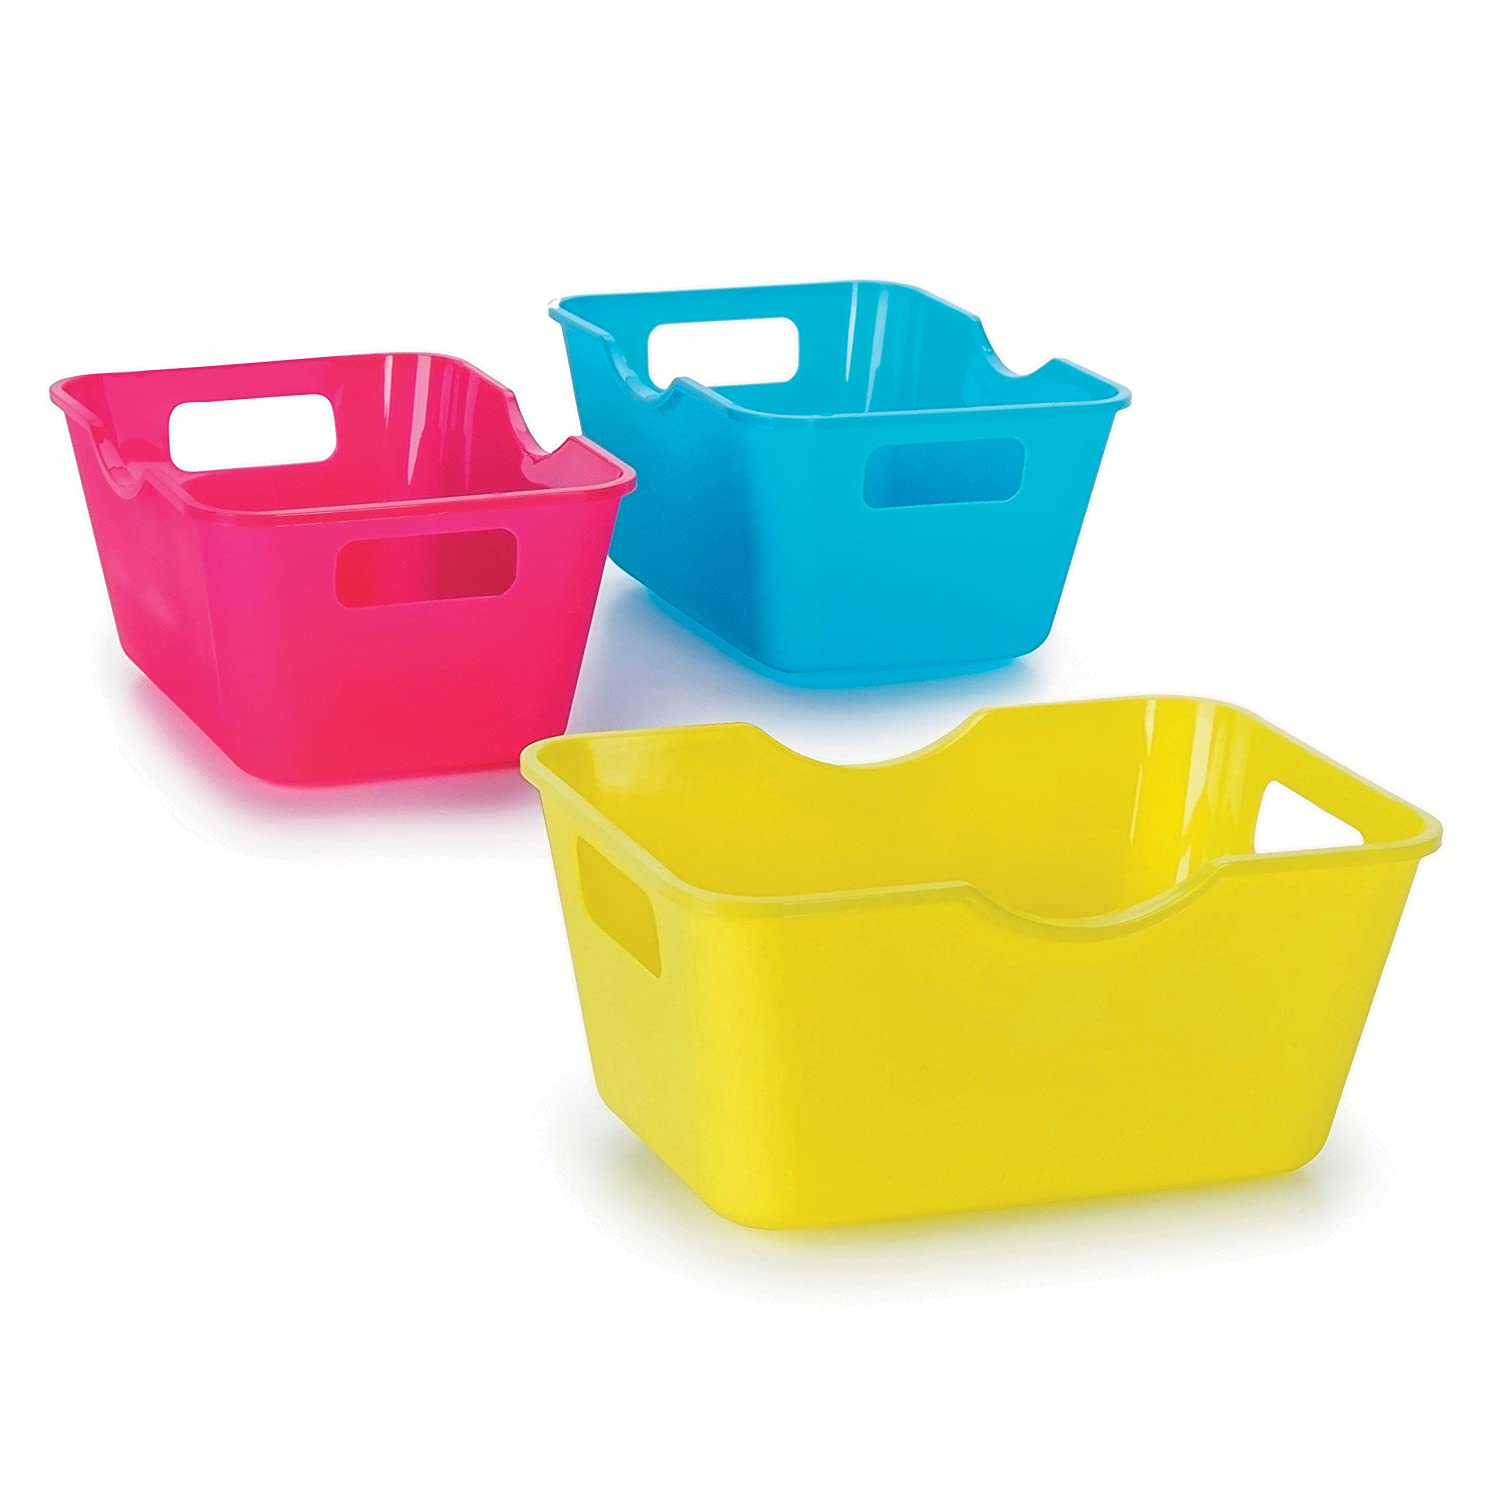 Darice Crafter's Toolbox Mini Colorful Storage Bins - 4 x 2.75 inches - 3 pieces